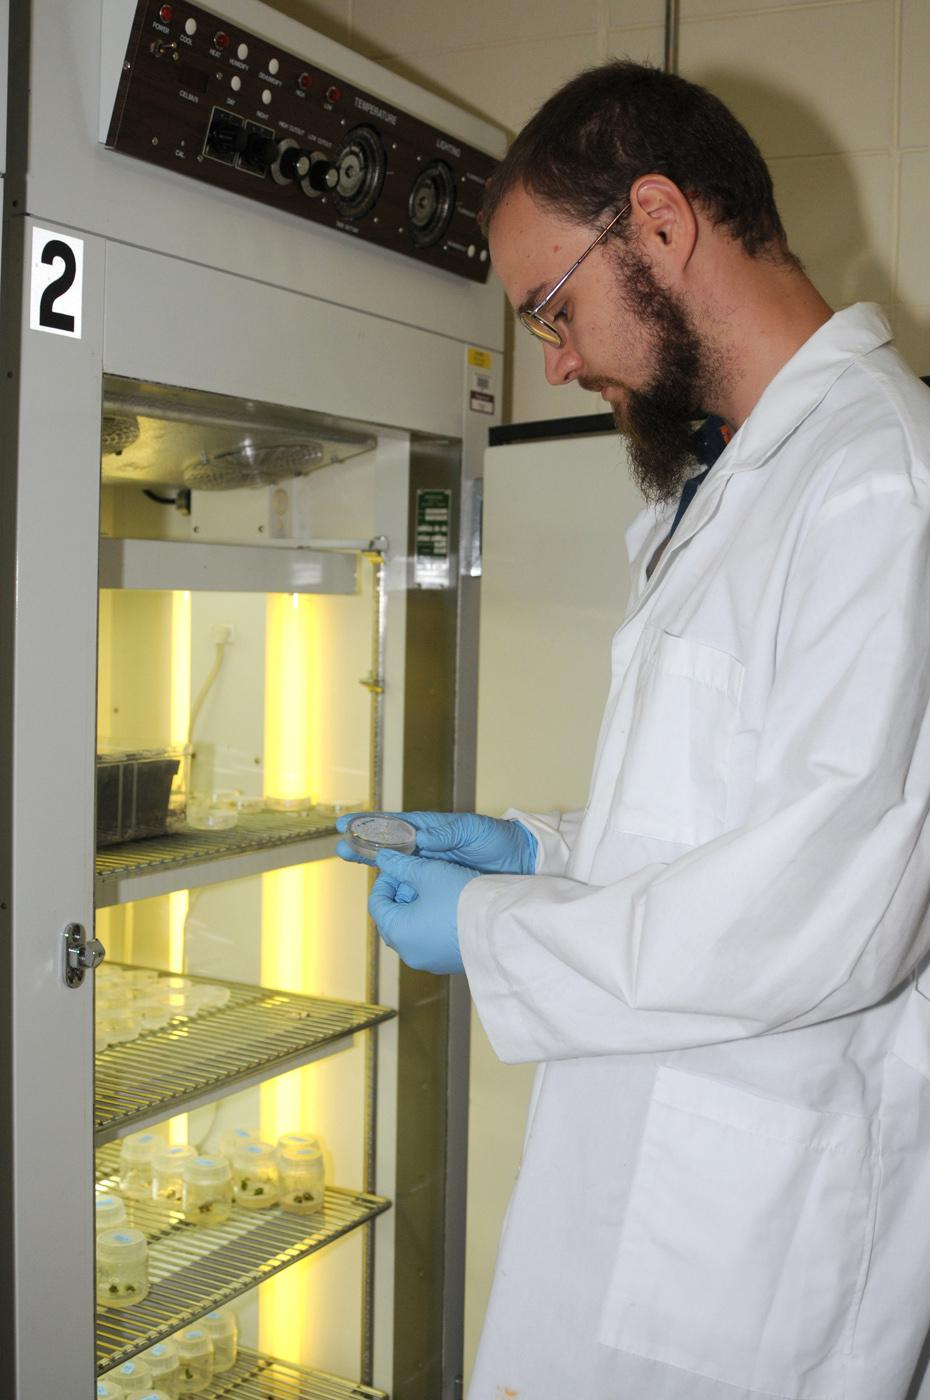 Daniel Barnes, a doctoral student at Mississippi State University, is trying to genetically modify castor seed so it can be grownsafely for commercial oil production in Mississippi. Here he checks the status of castor embryonic tissue involved in his experiments.